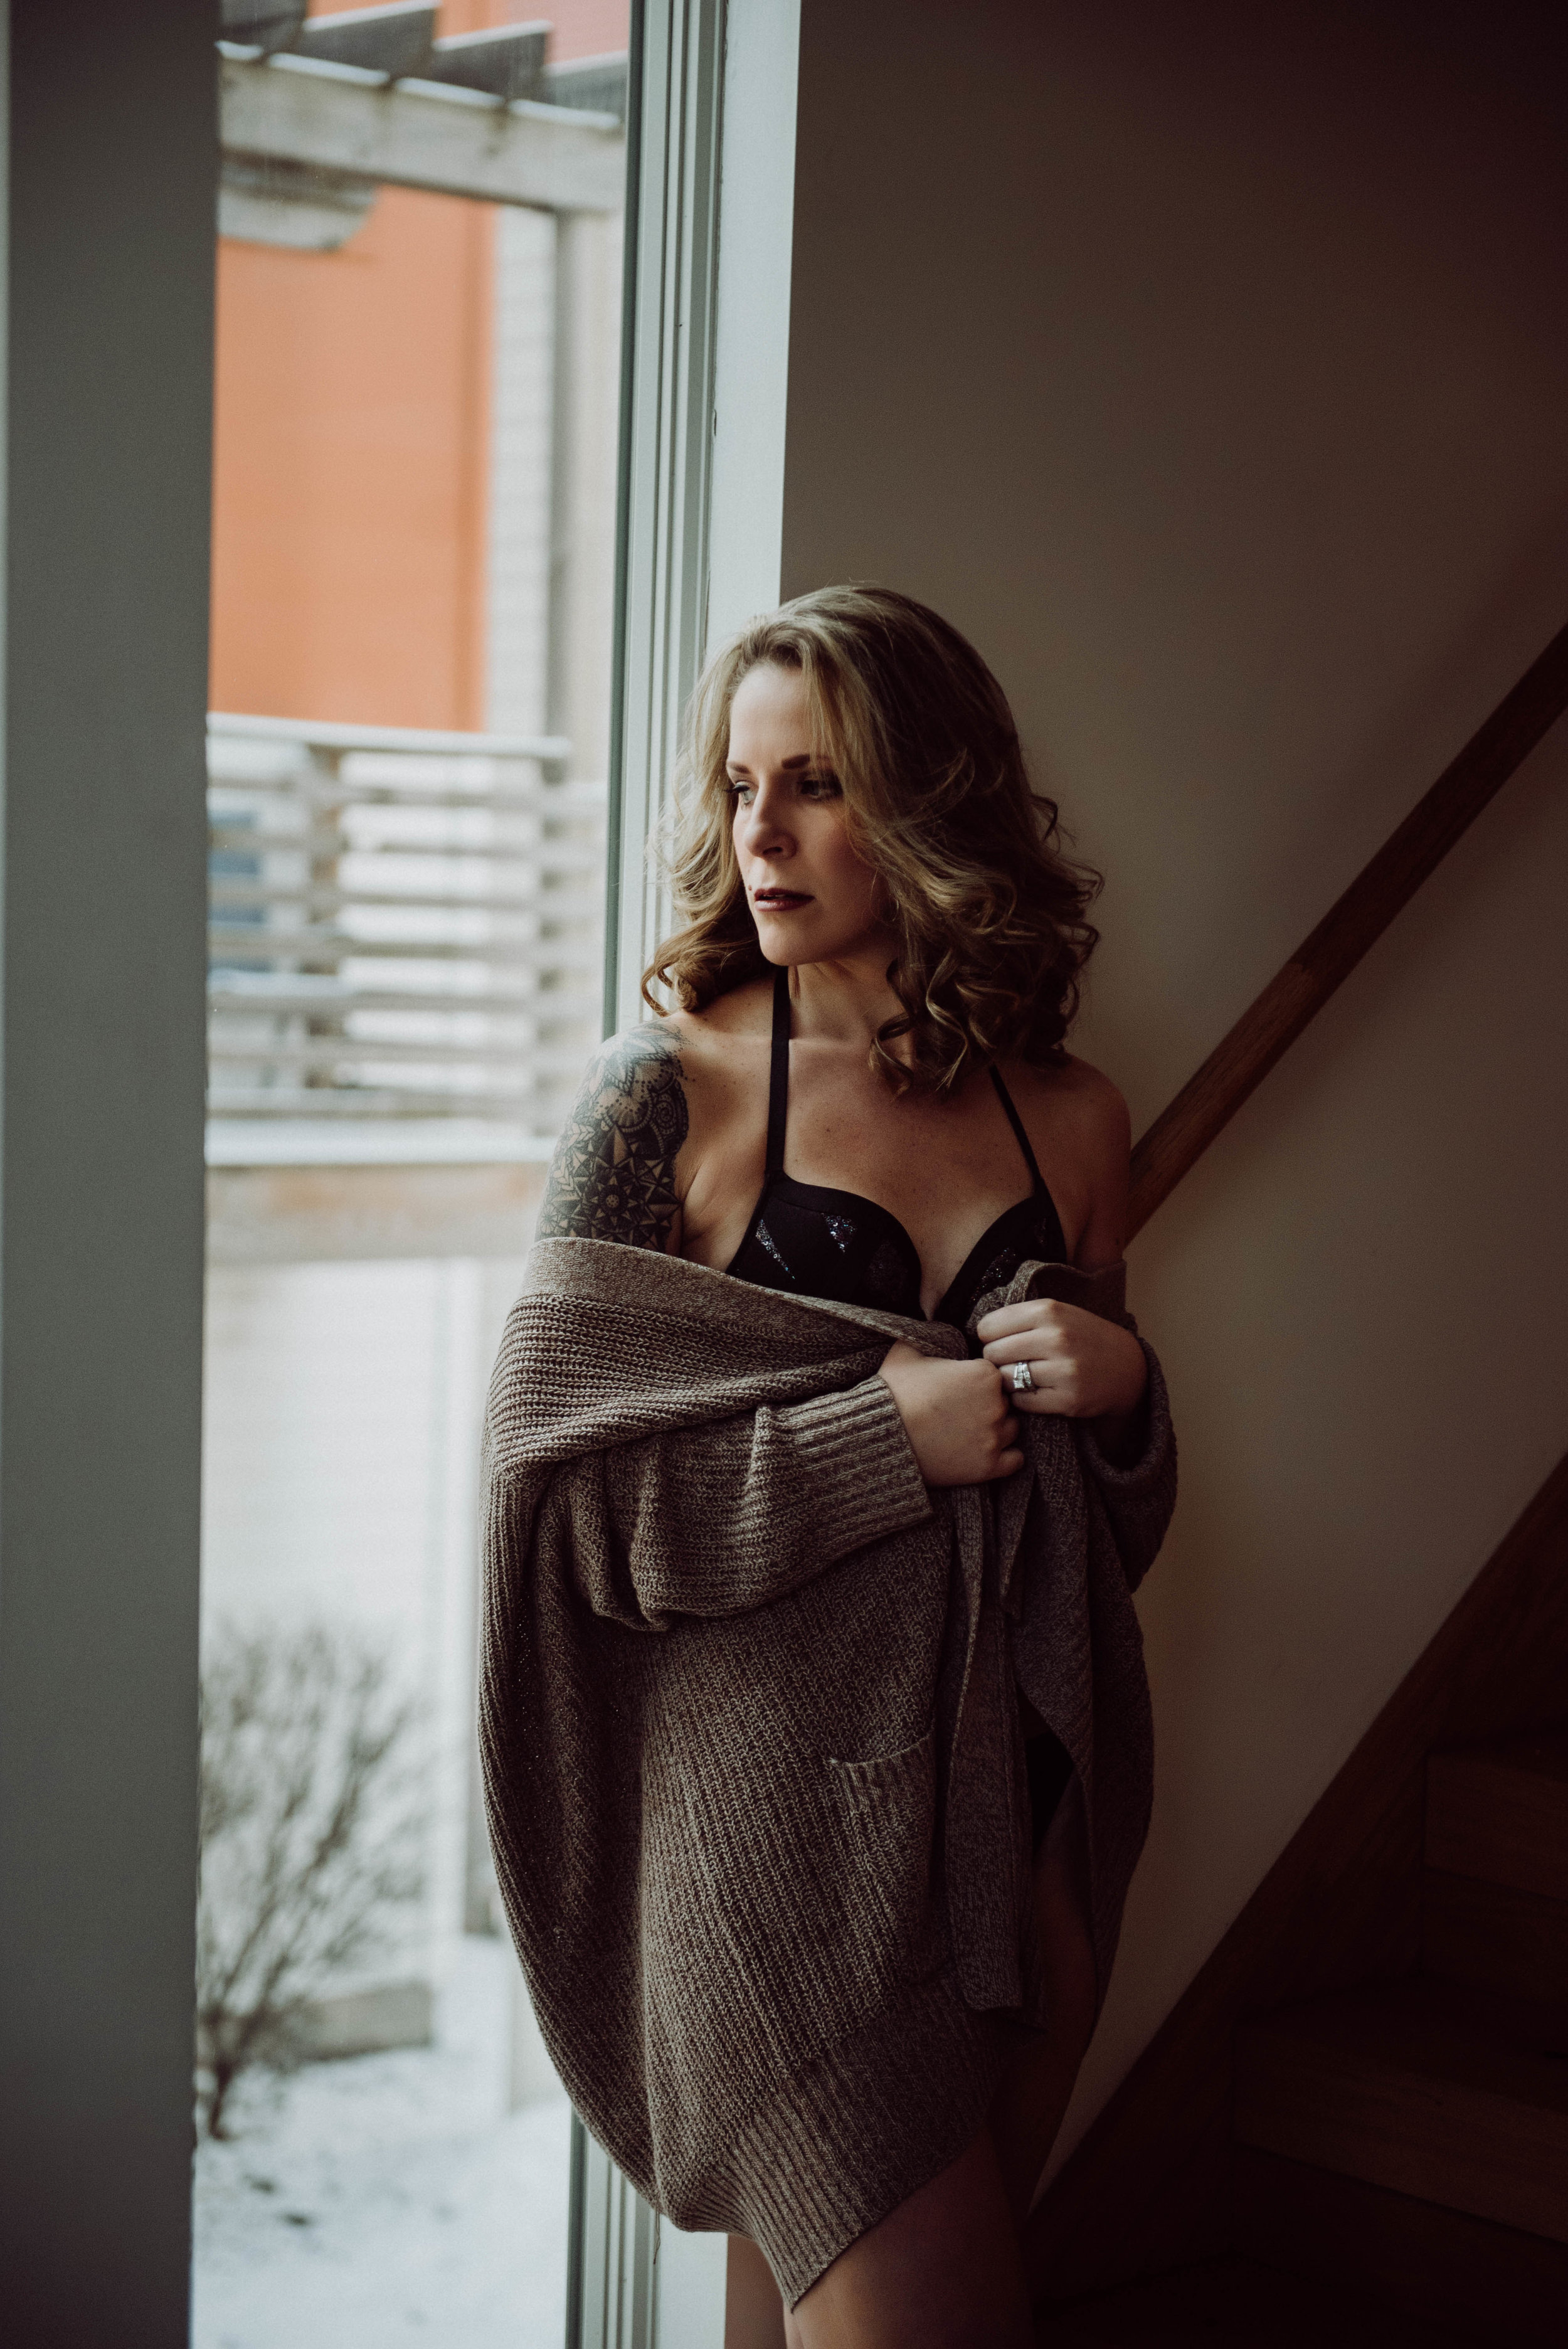 Curly hair blonde in sweater with black top boudoir photography New York City